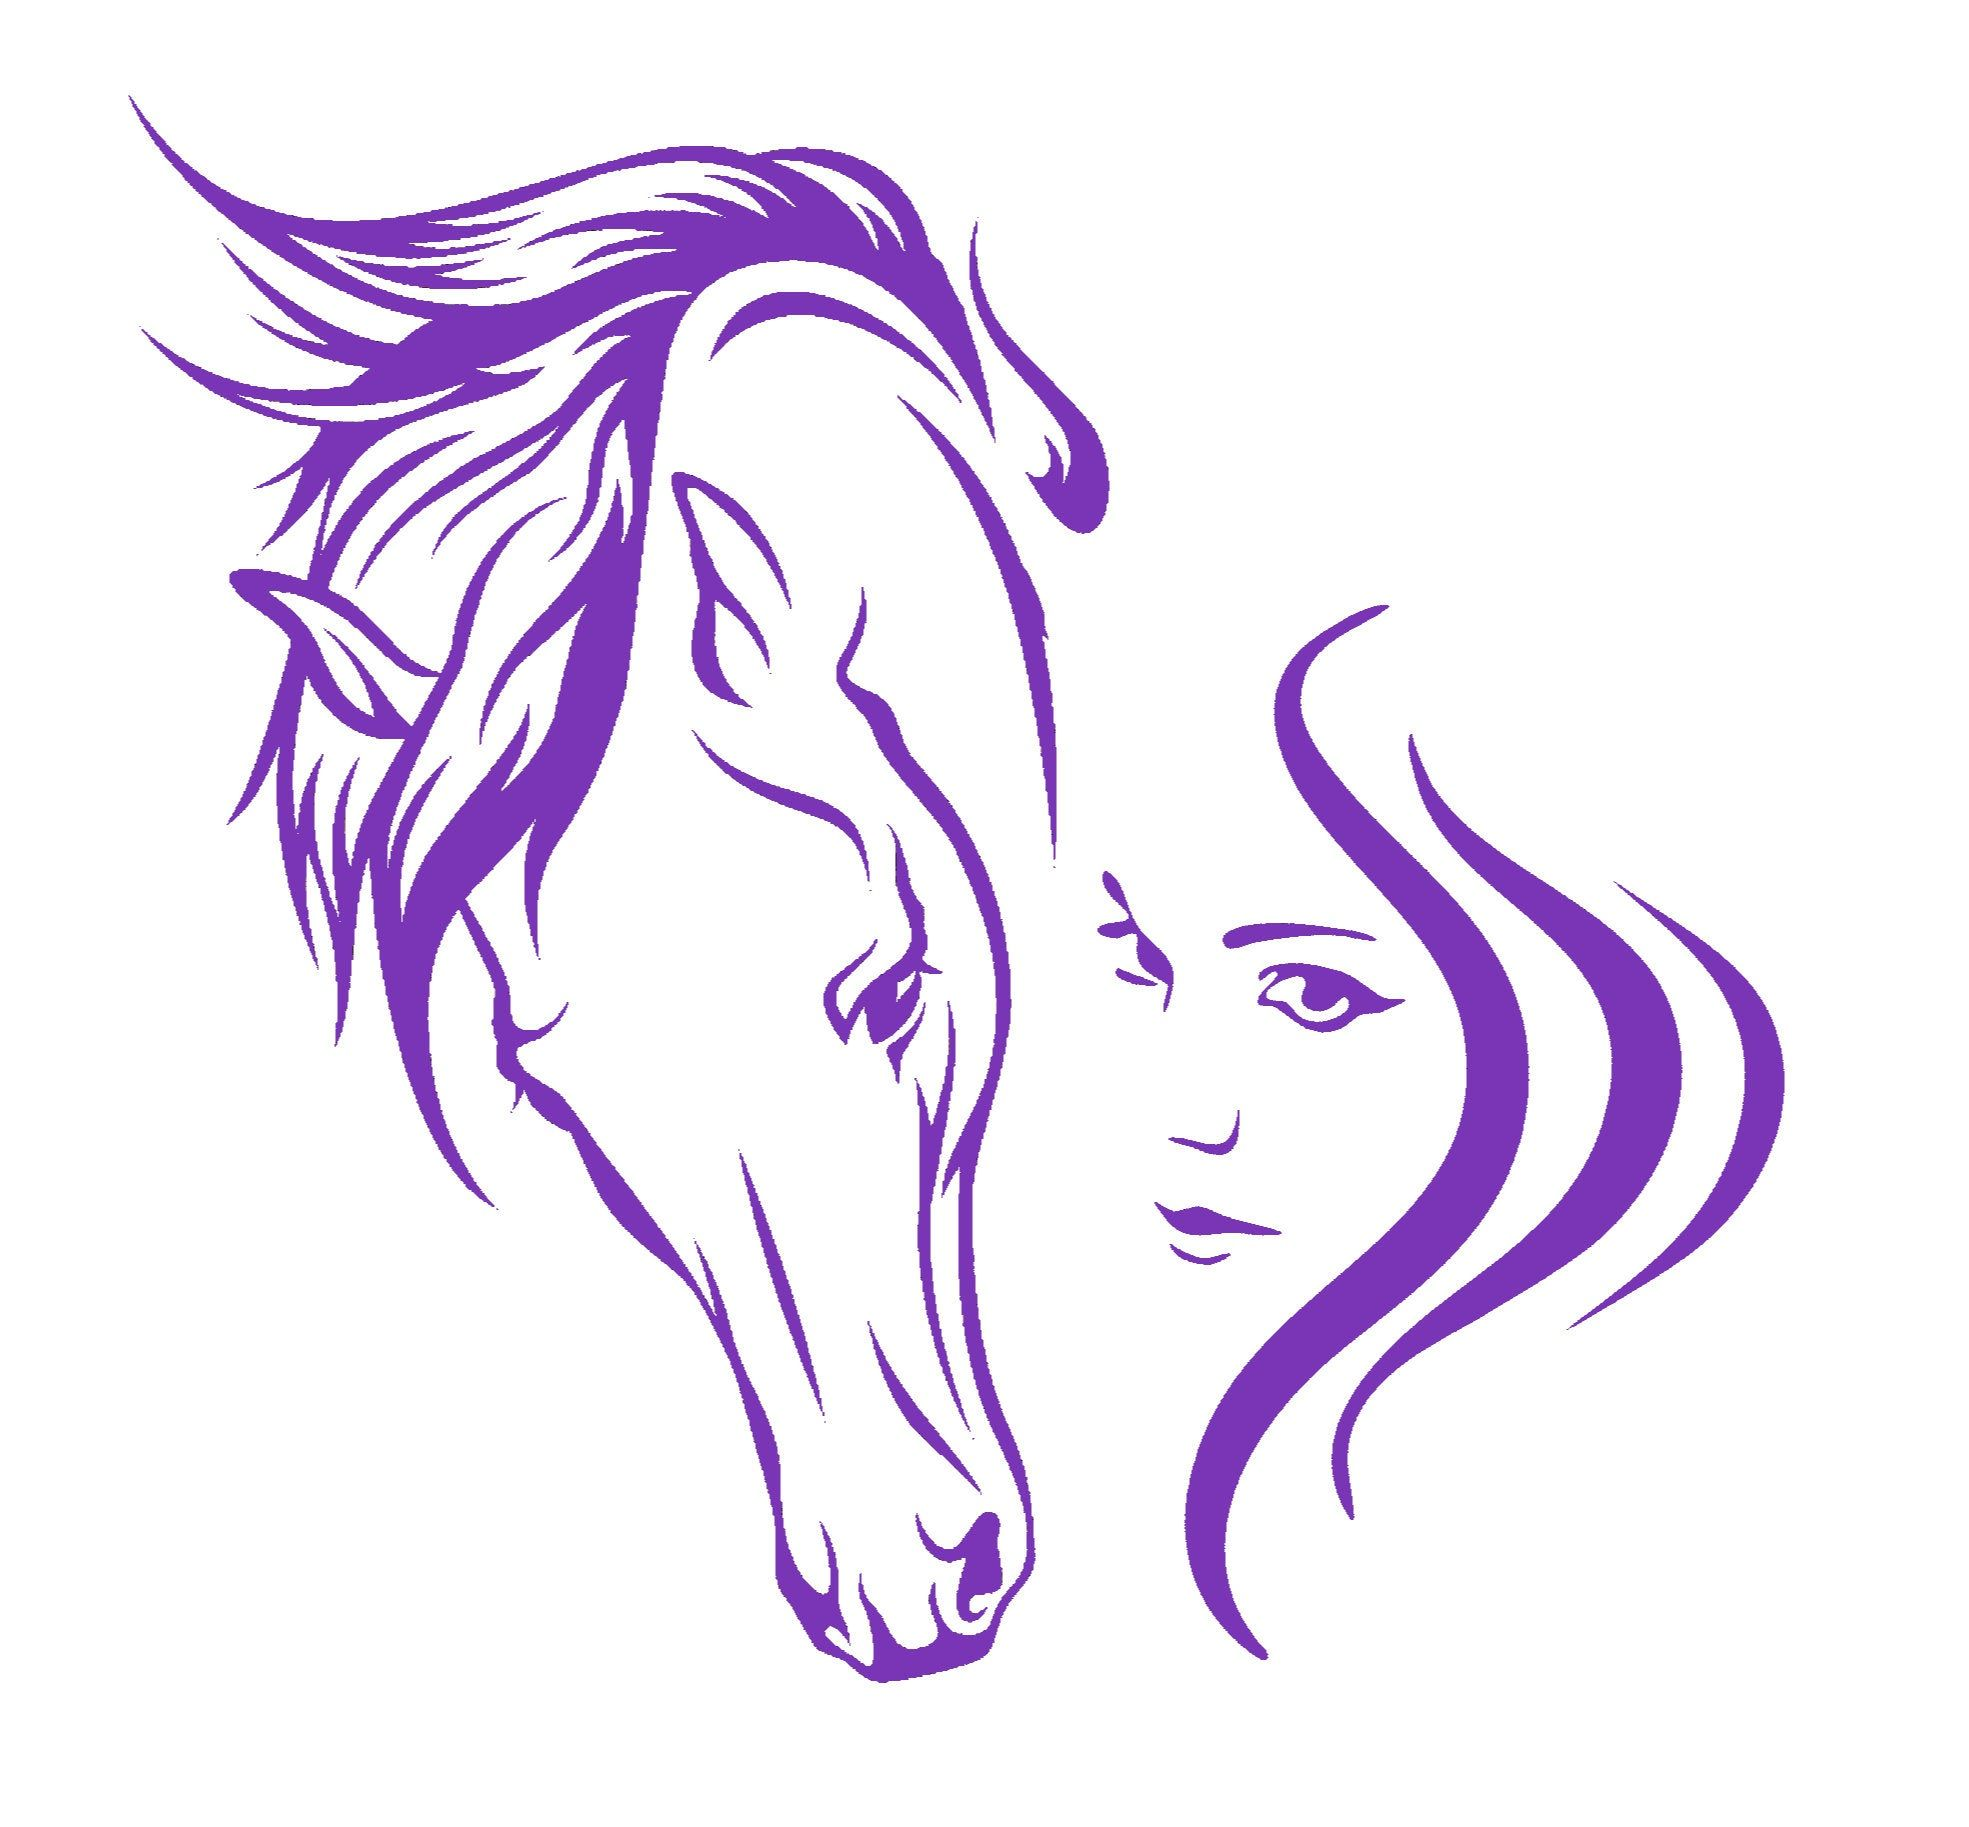 Horse Decal Horse And Girl Decal Cowgirl Decal Horse Lovers Vinyl Sticker Car Truck Laptop Window Wall Decor In Va Girl Decals Nature Decal Butterfly Decal [ 1827 x 1969 Pixel ]